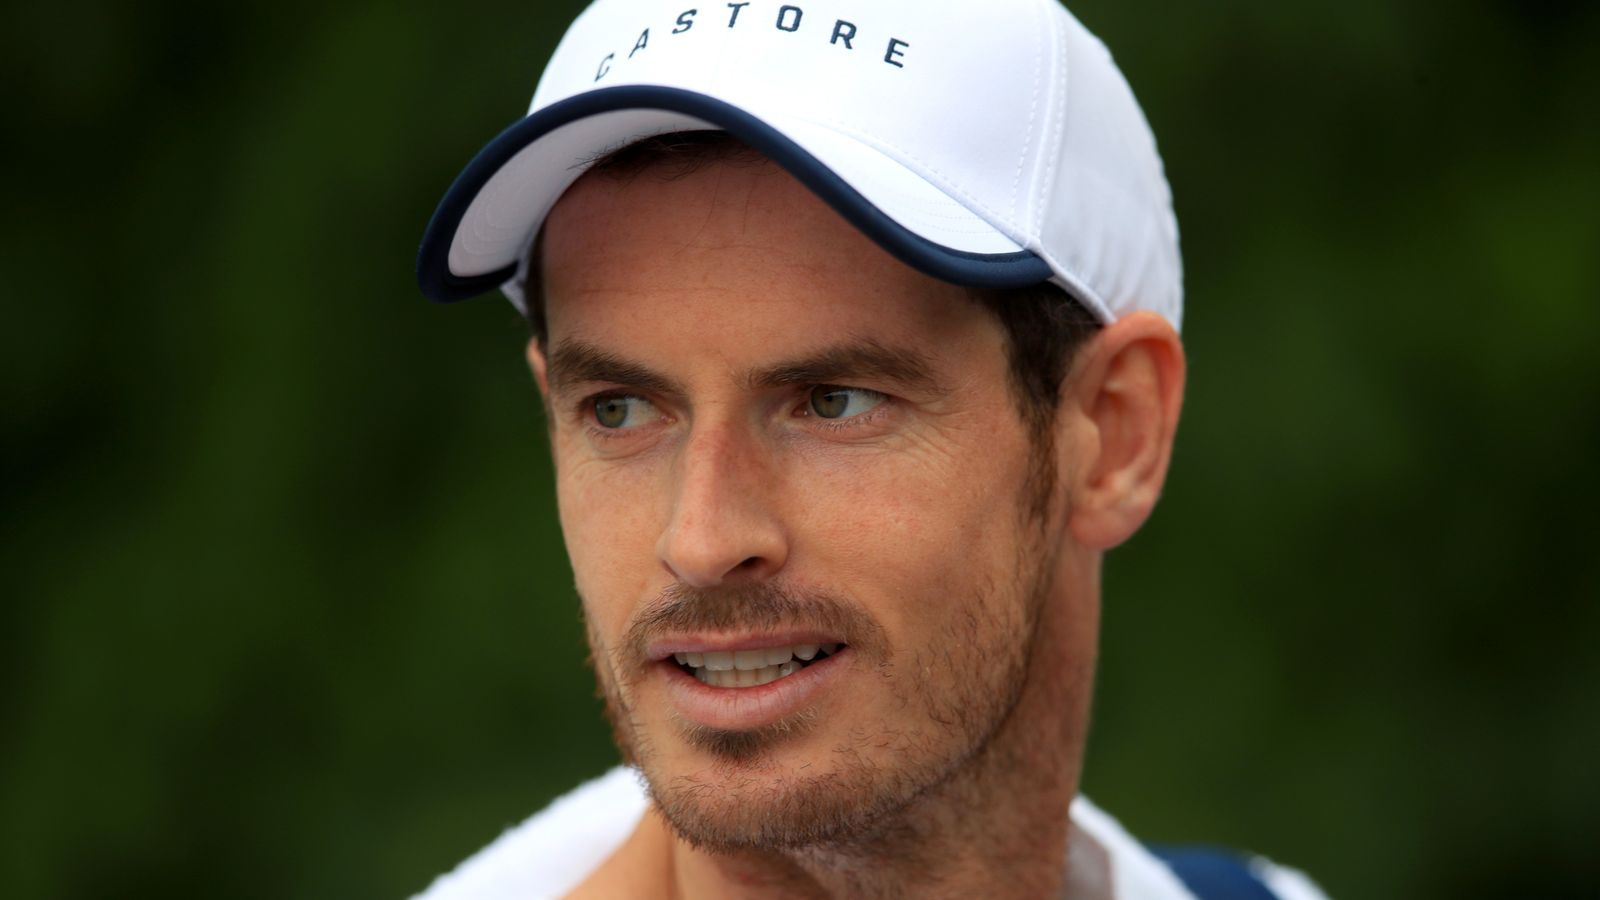 Andy Murray drawn to face Frenchman Benoit Paire at The Queen's Club